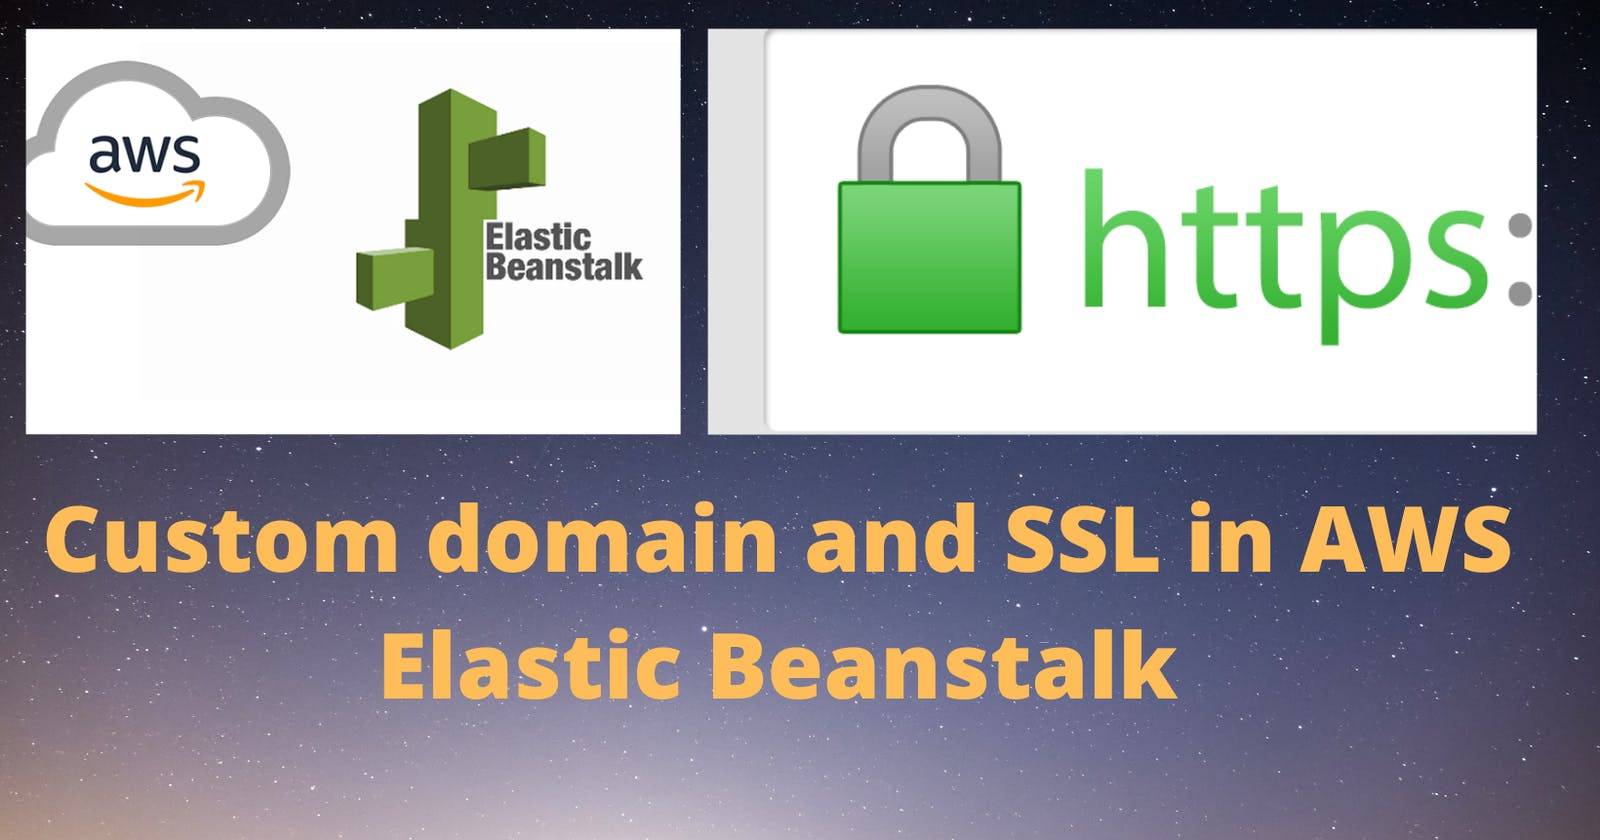 Add a custom domain to the elastic beanstalk and enable SSL